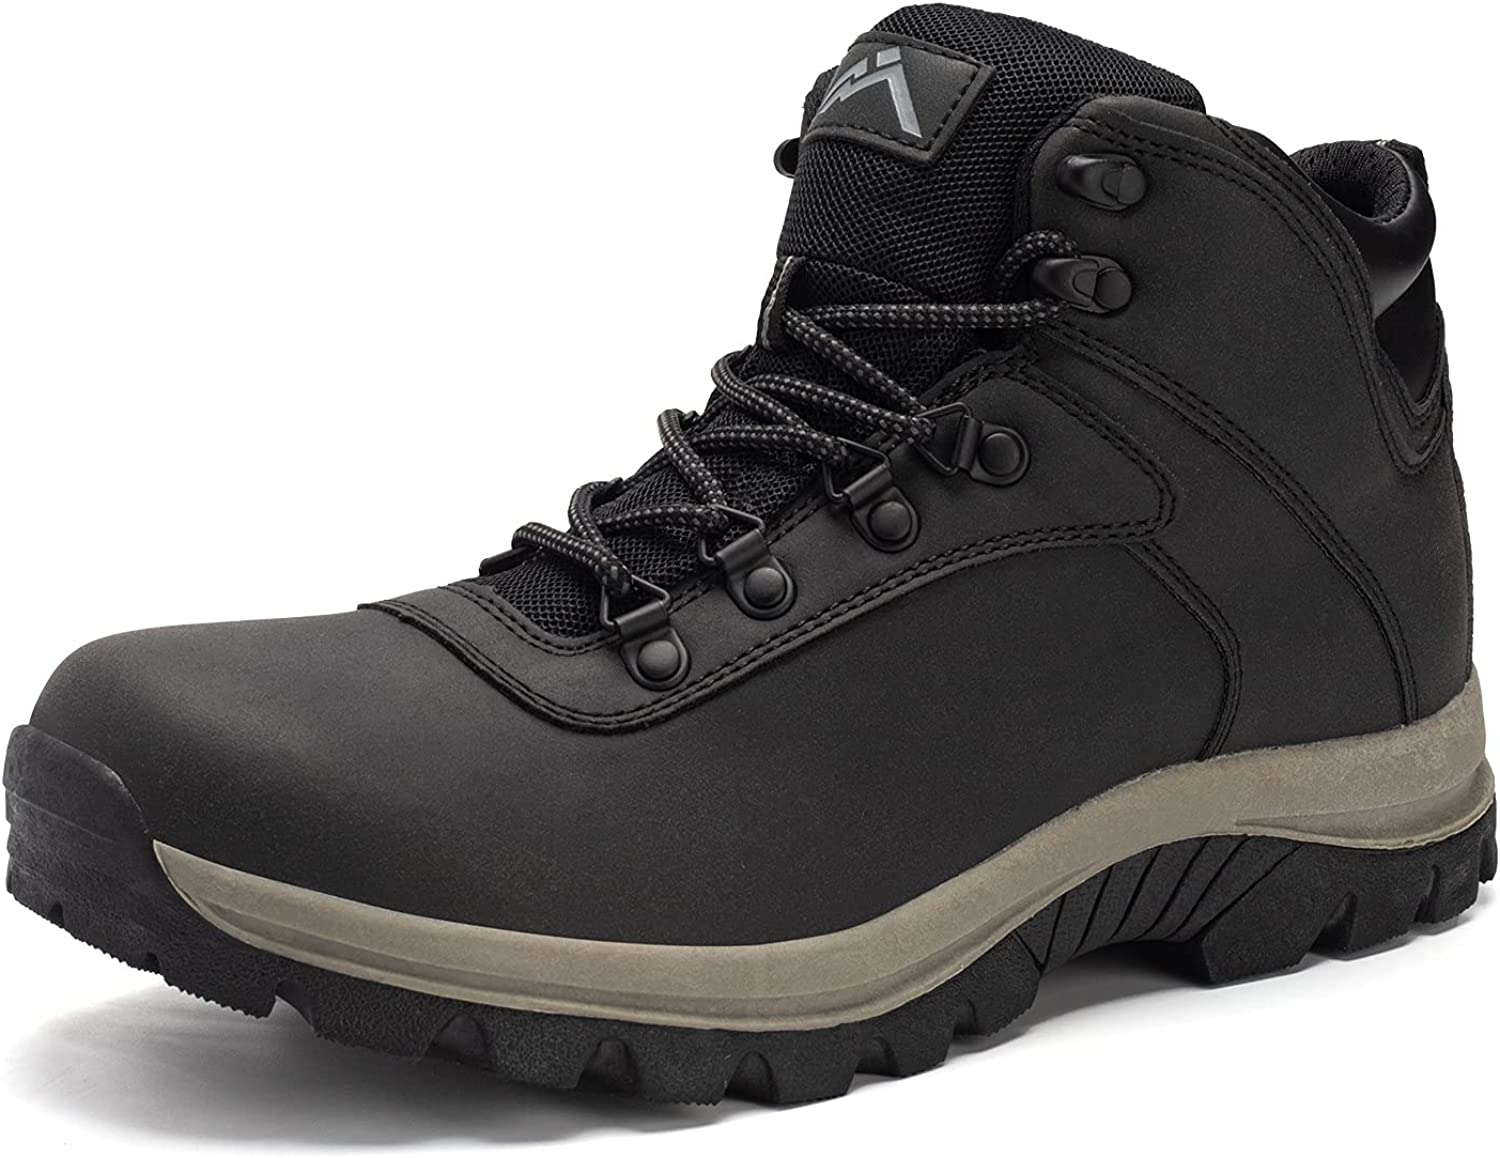 CC-Los Men's Hiking Boots 5-Year Raleigh Mall Waterproof New color Mid Boo Warranty Top